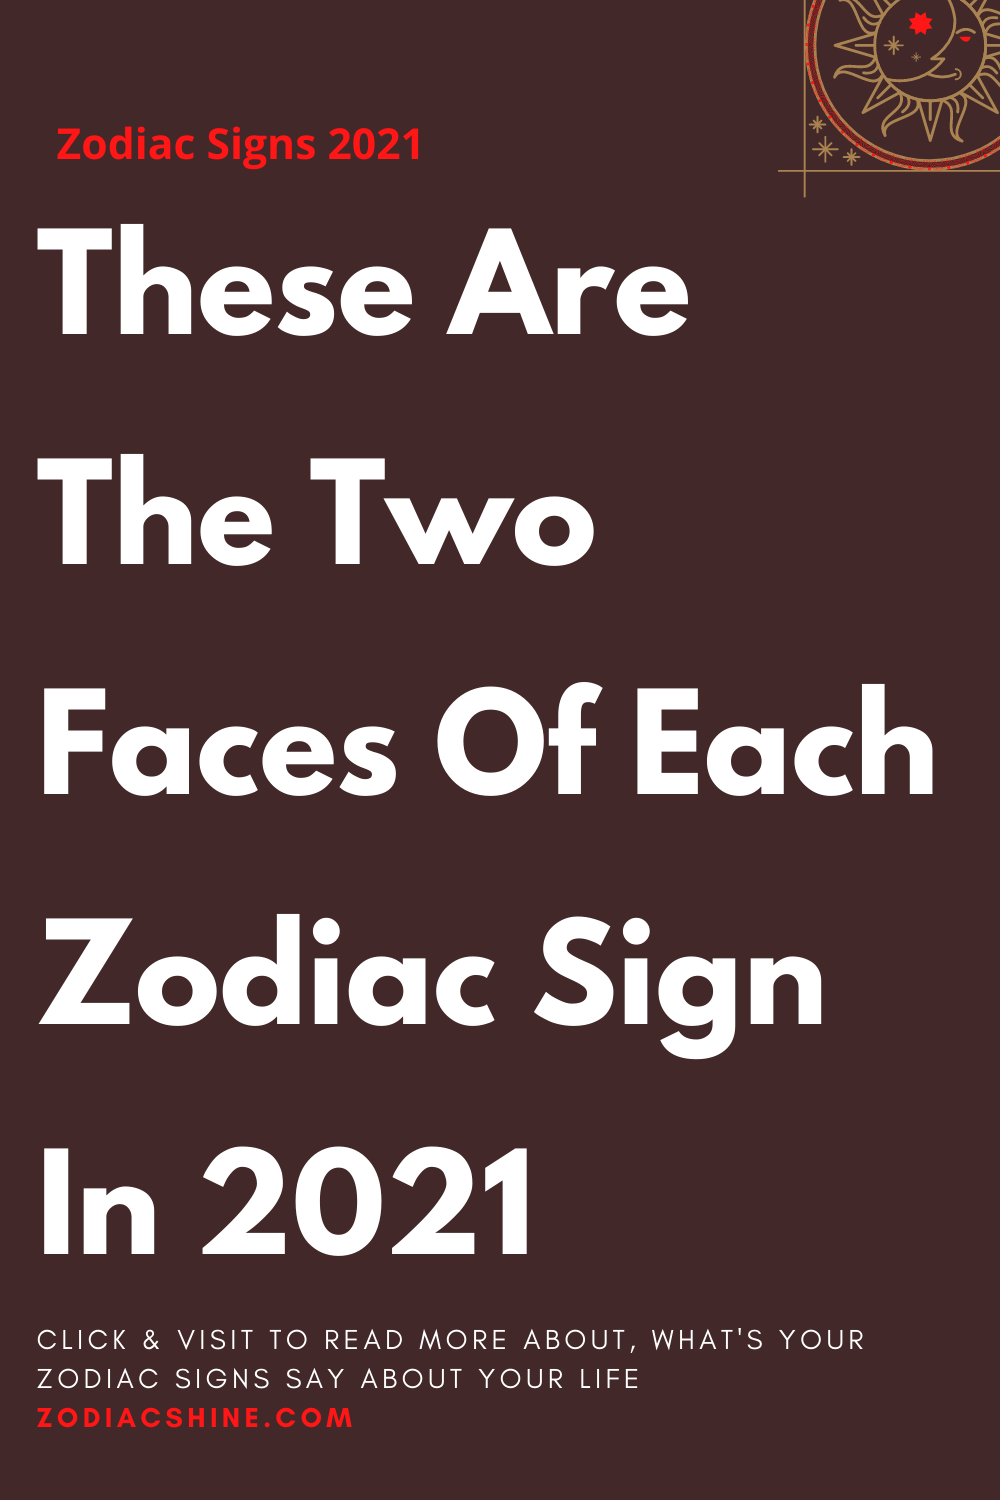 These Are The Two Faces Of Each Zodiac Sign In 2021